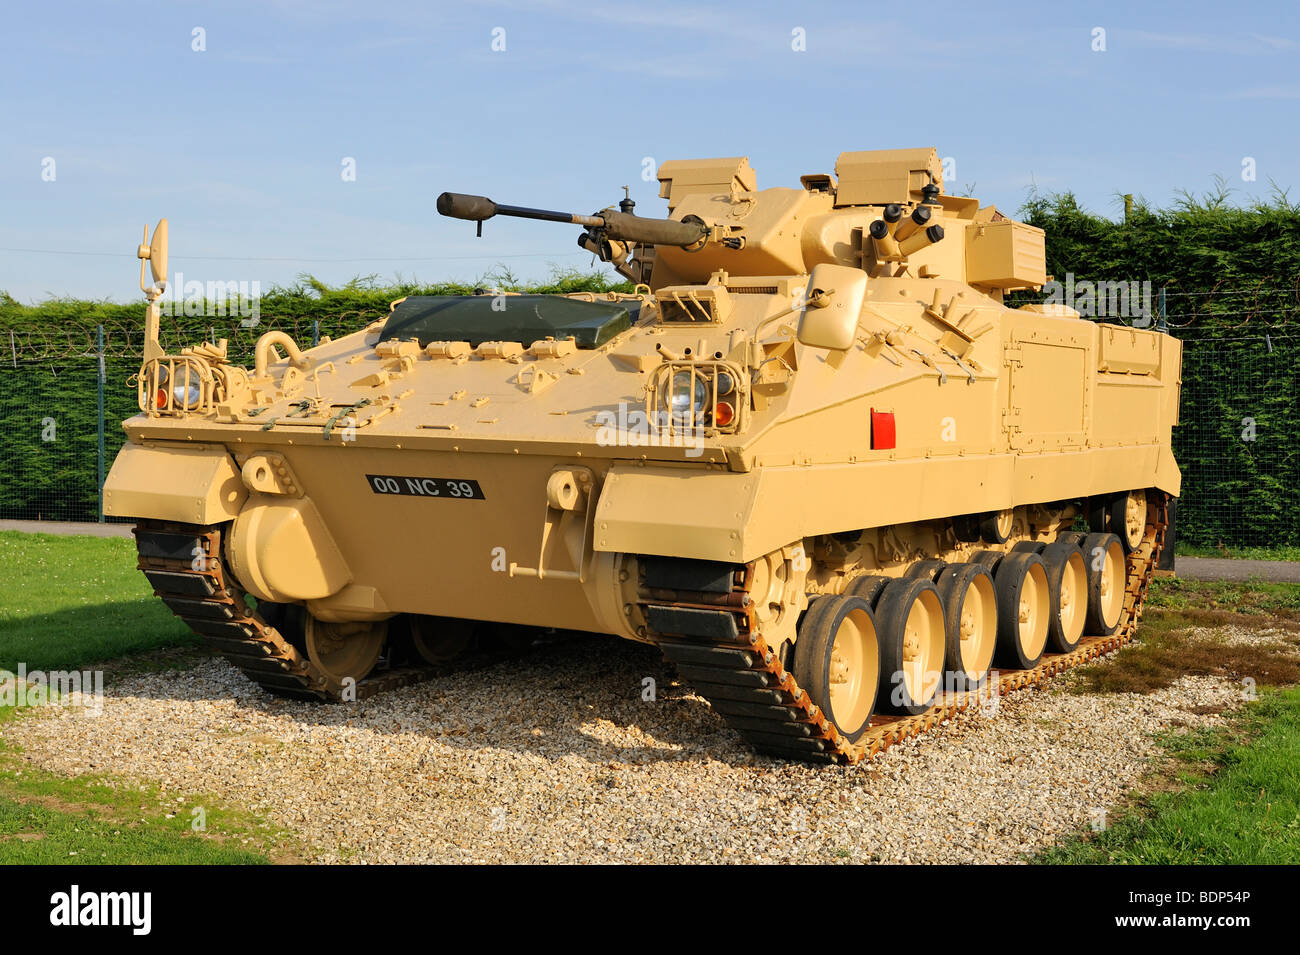 A British armored MCV-80 Warrior tank, England, UK, Europe - Stock Image